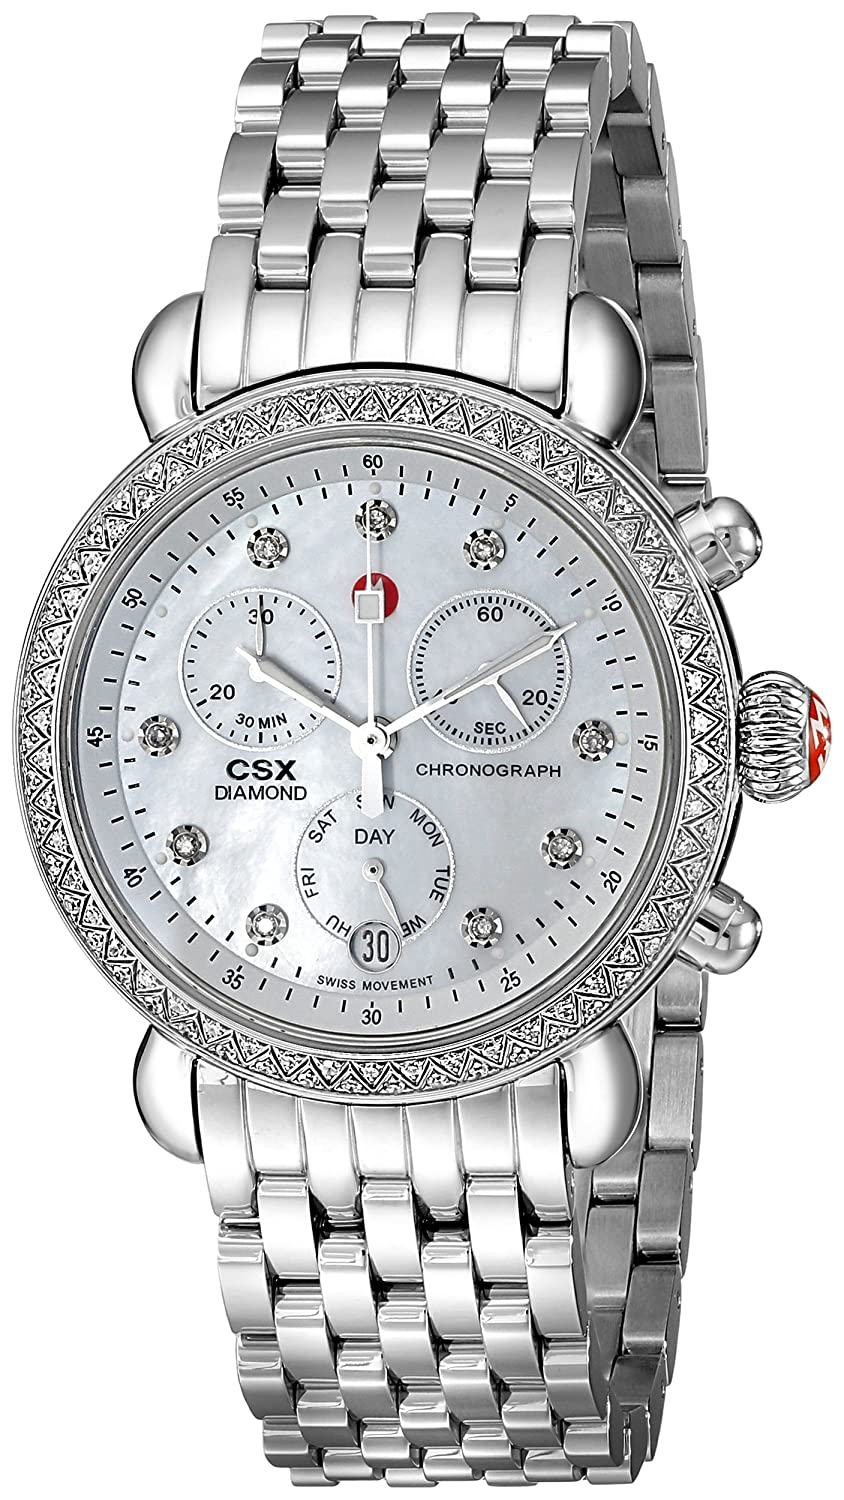 f8c7e626f5f74 Amazon.com  MICHELE Women s MWW03M000114 CSX-36 Stainless Steel Watch with  Link Bracelet  Michele  Watches